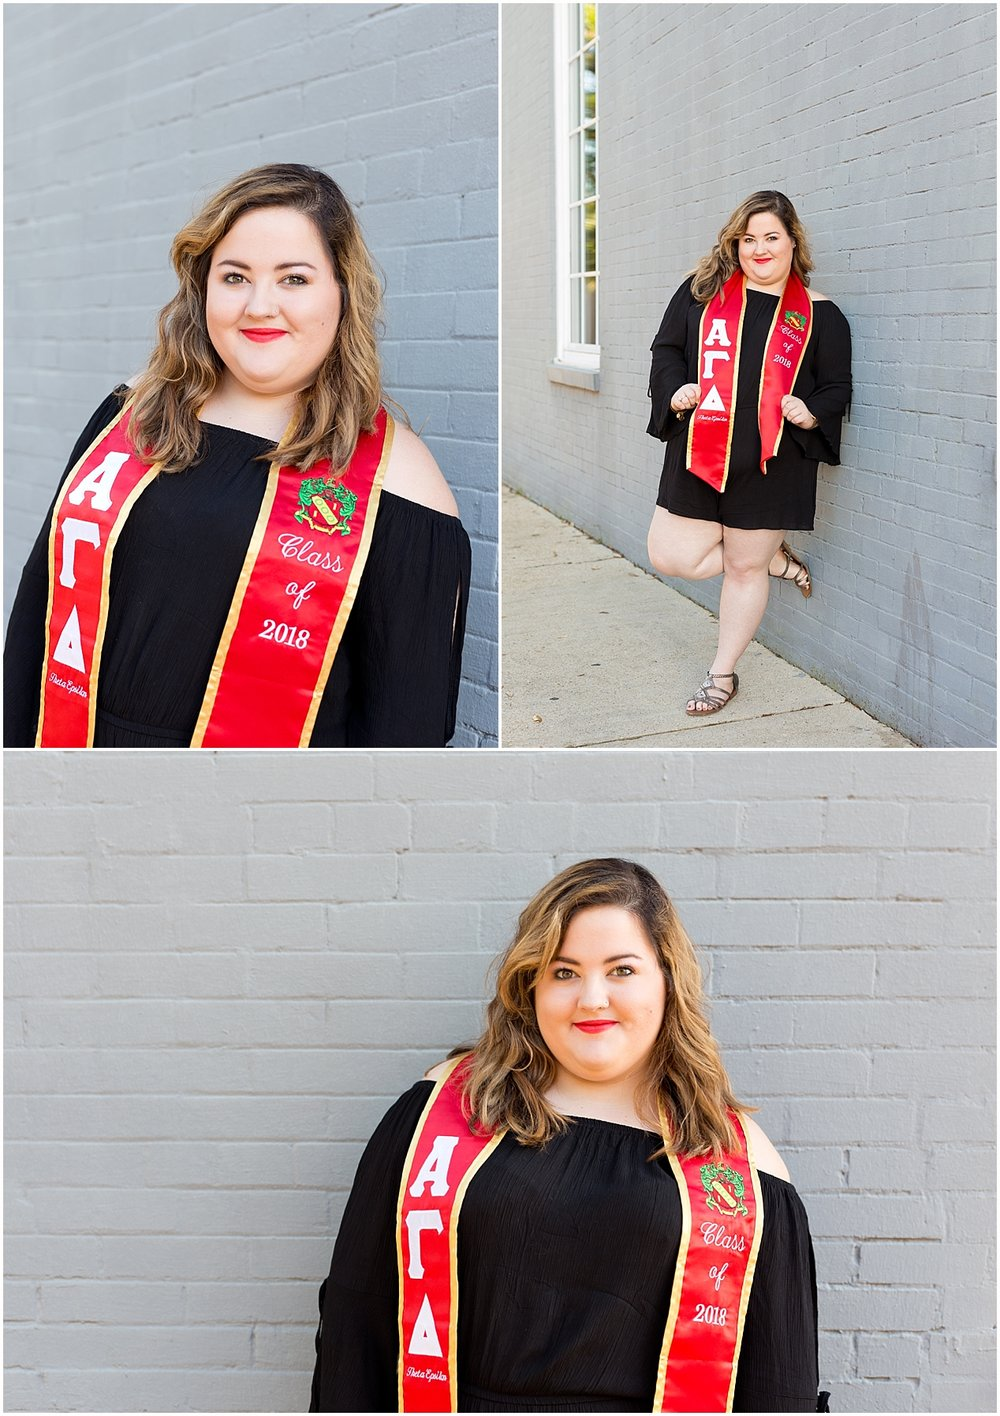 College Graduation Portrait with stole - University of South Alabama Alpha Gamma Delta sorority